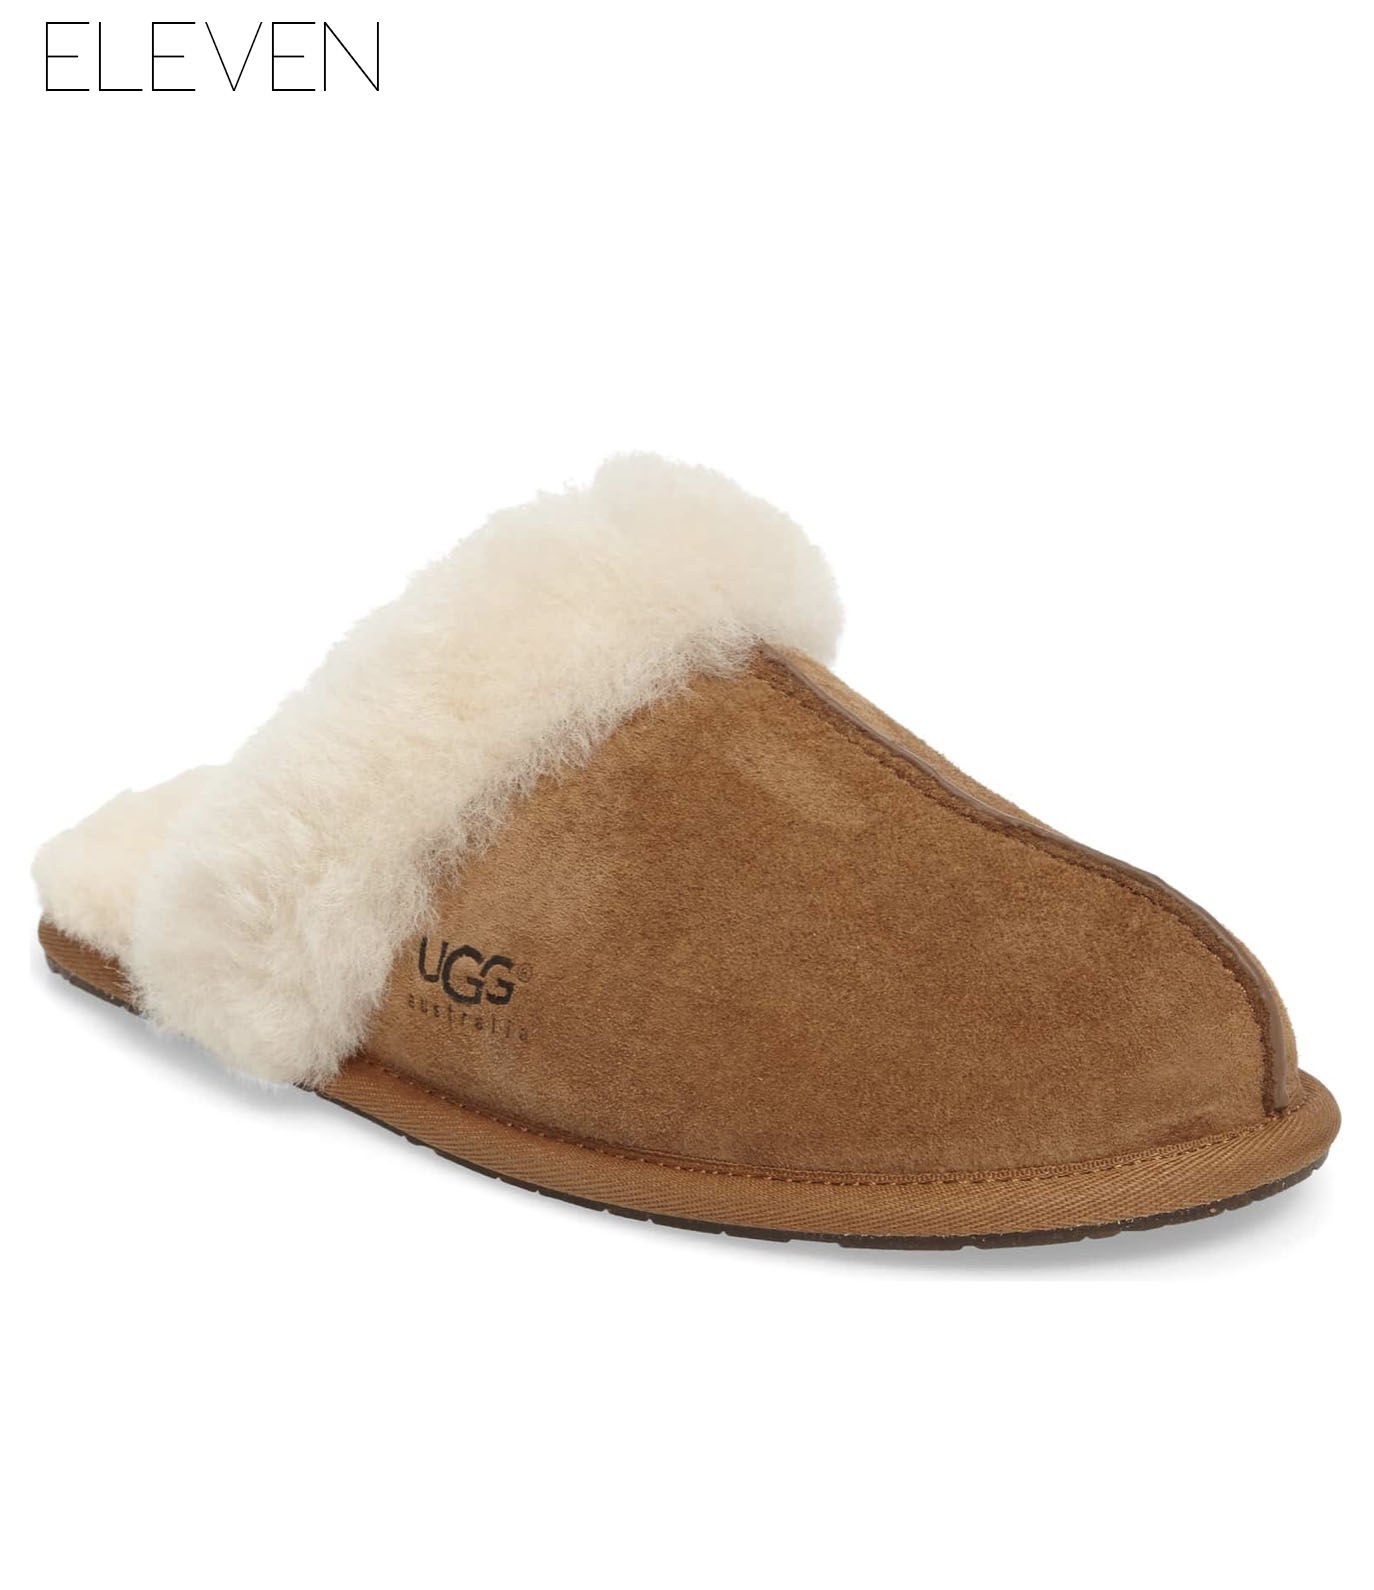 WOMEN'S SLIPPERS.jpg